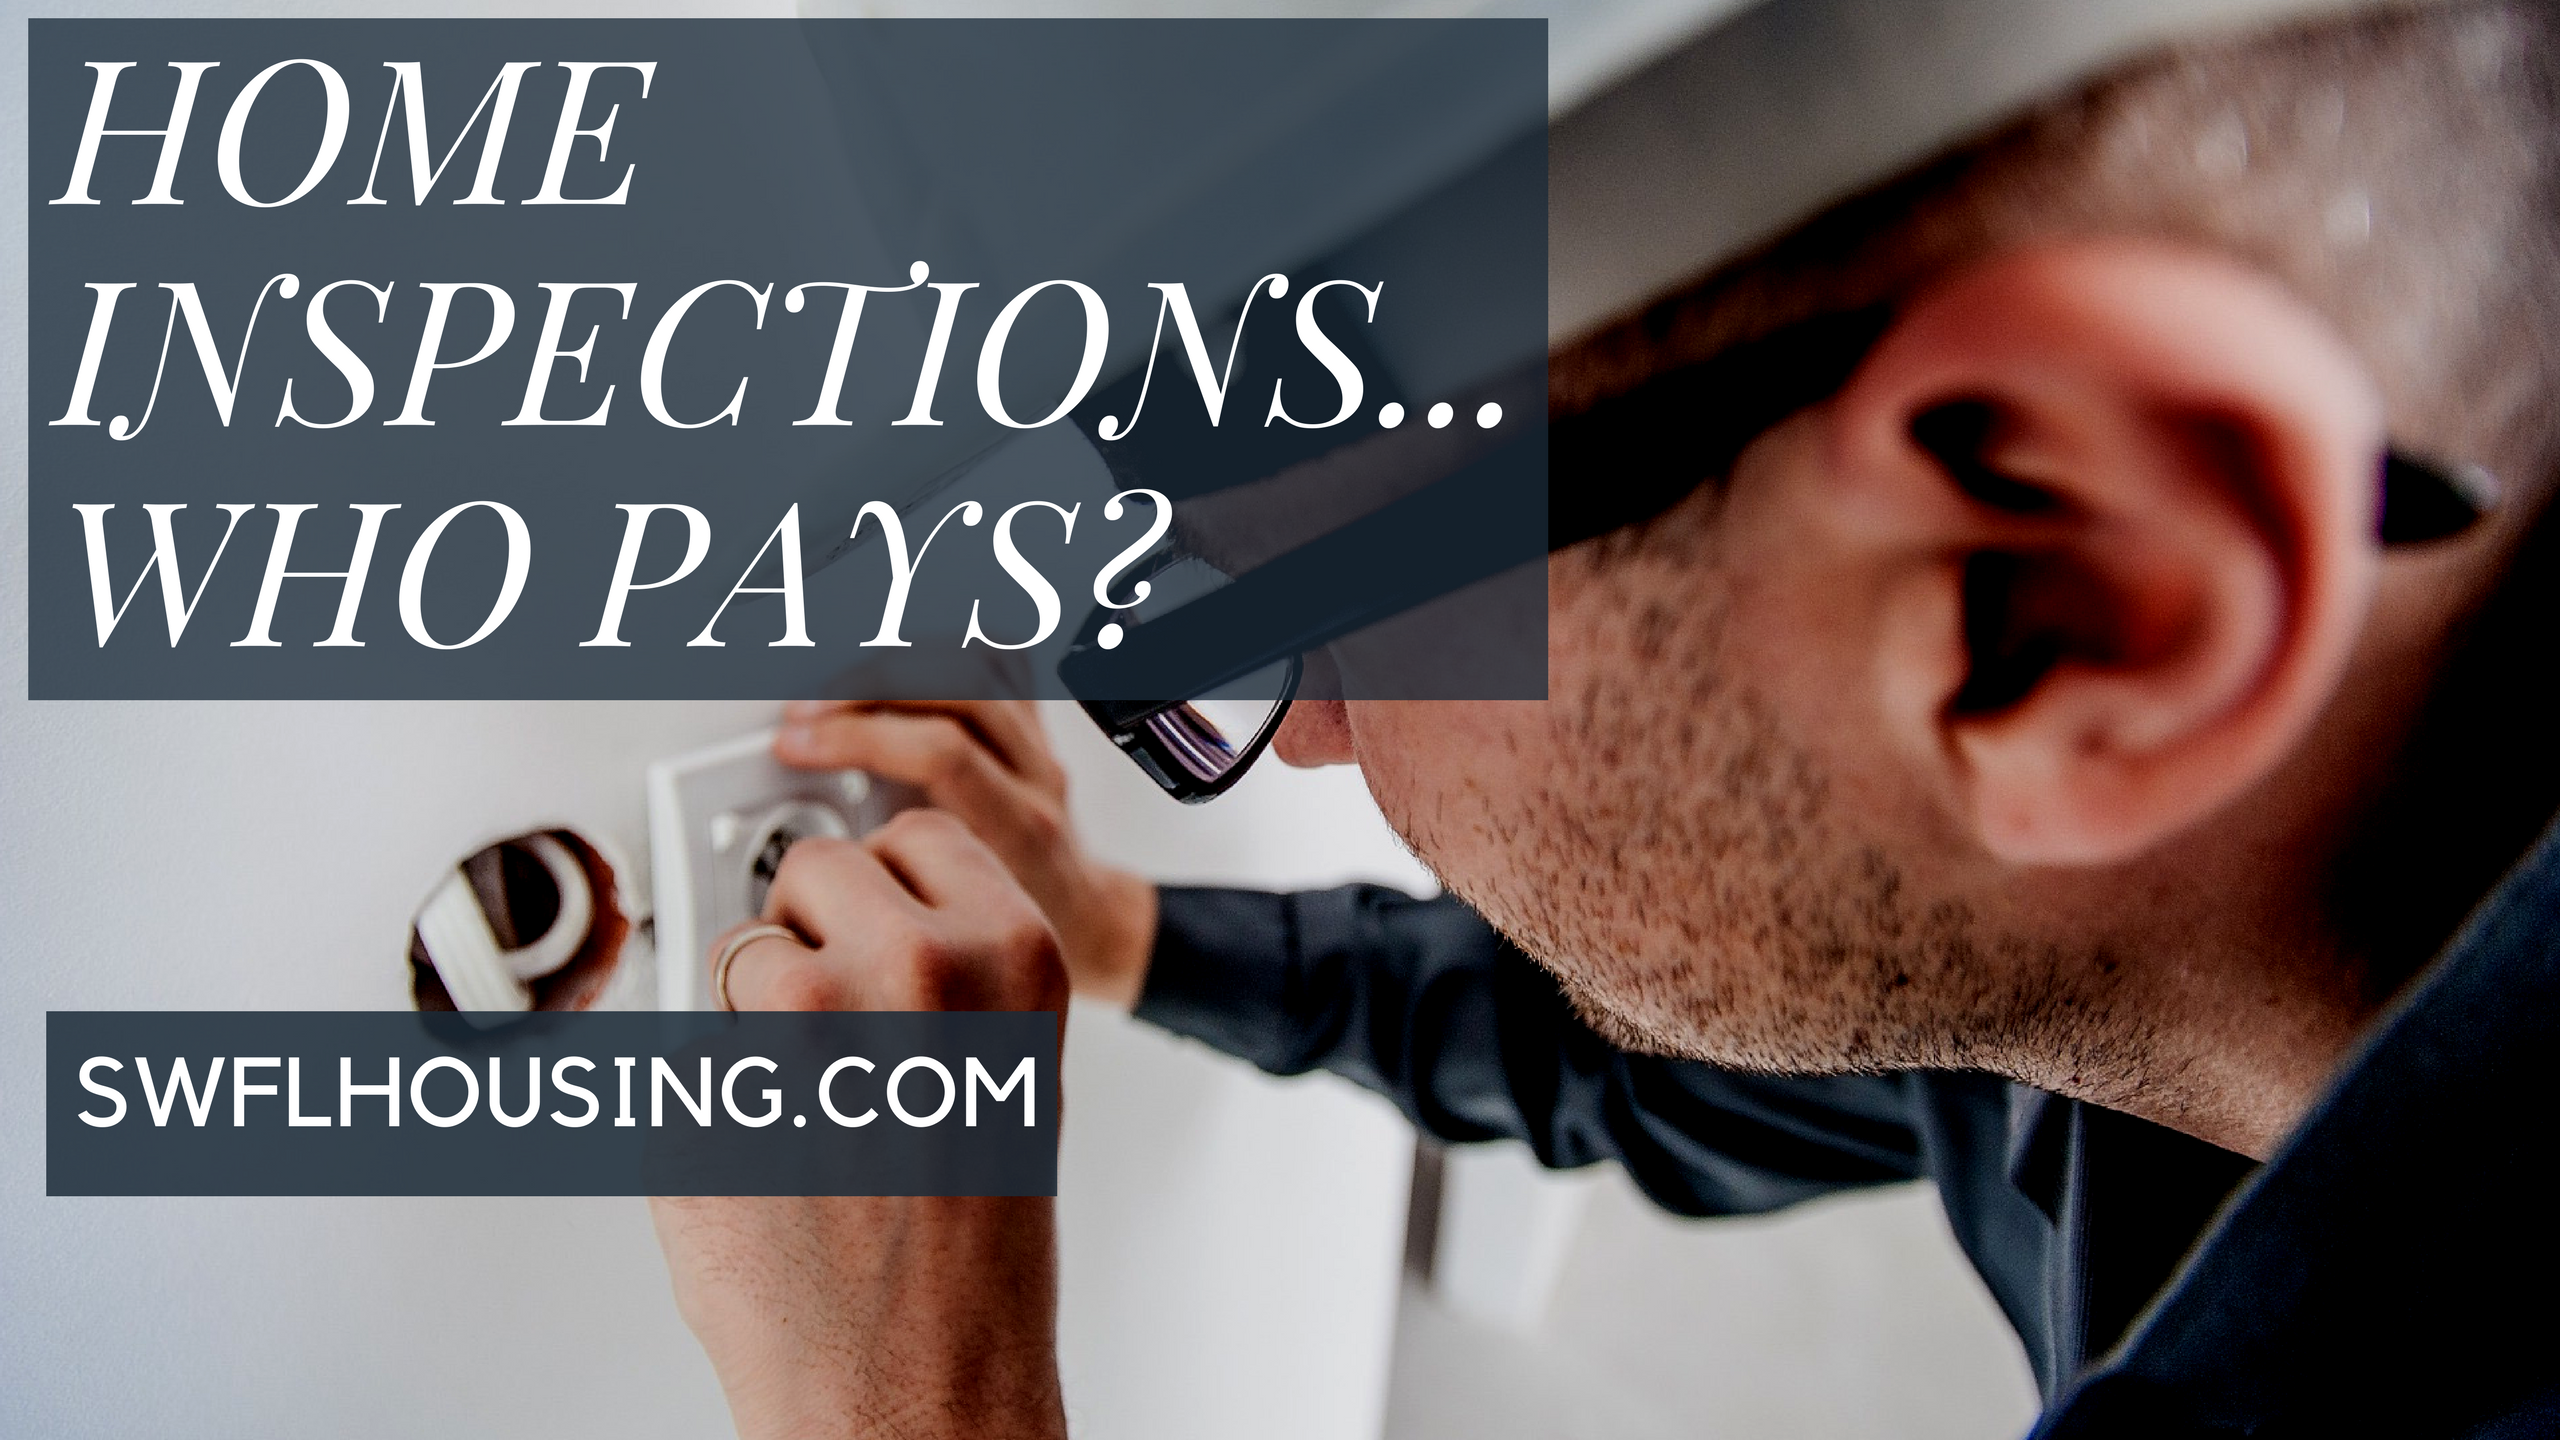 Home iNspections...Who Pays  homes for sale in bonita springs selling a house in bonita springs real